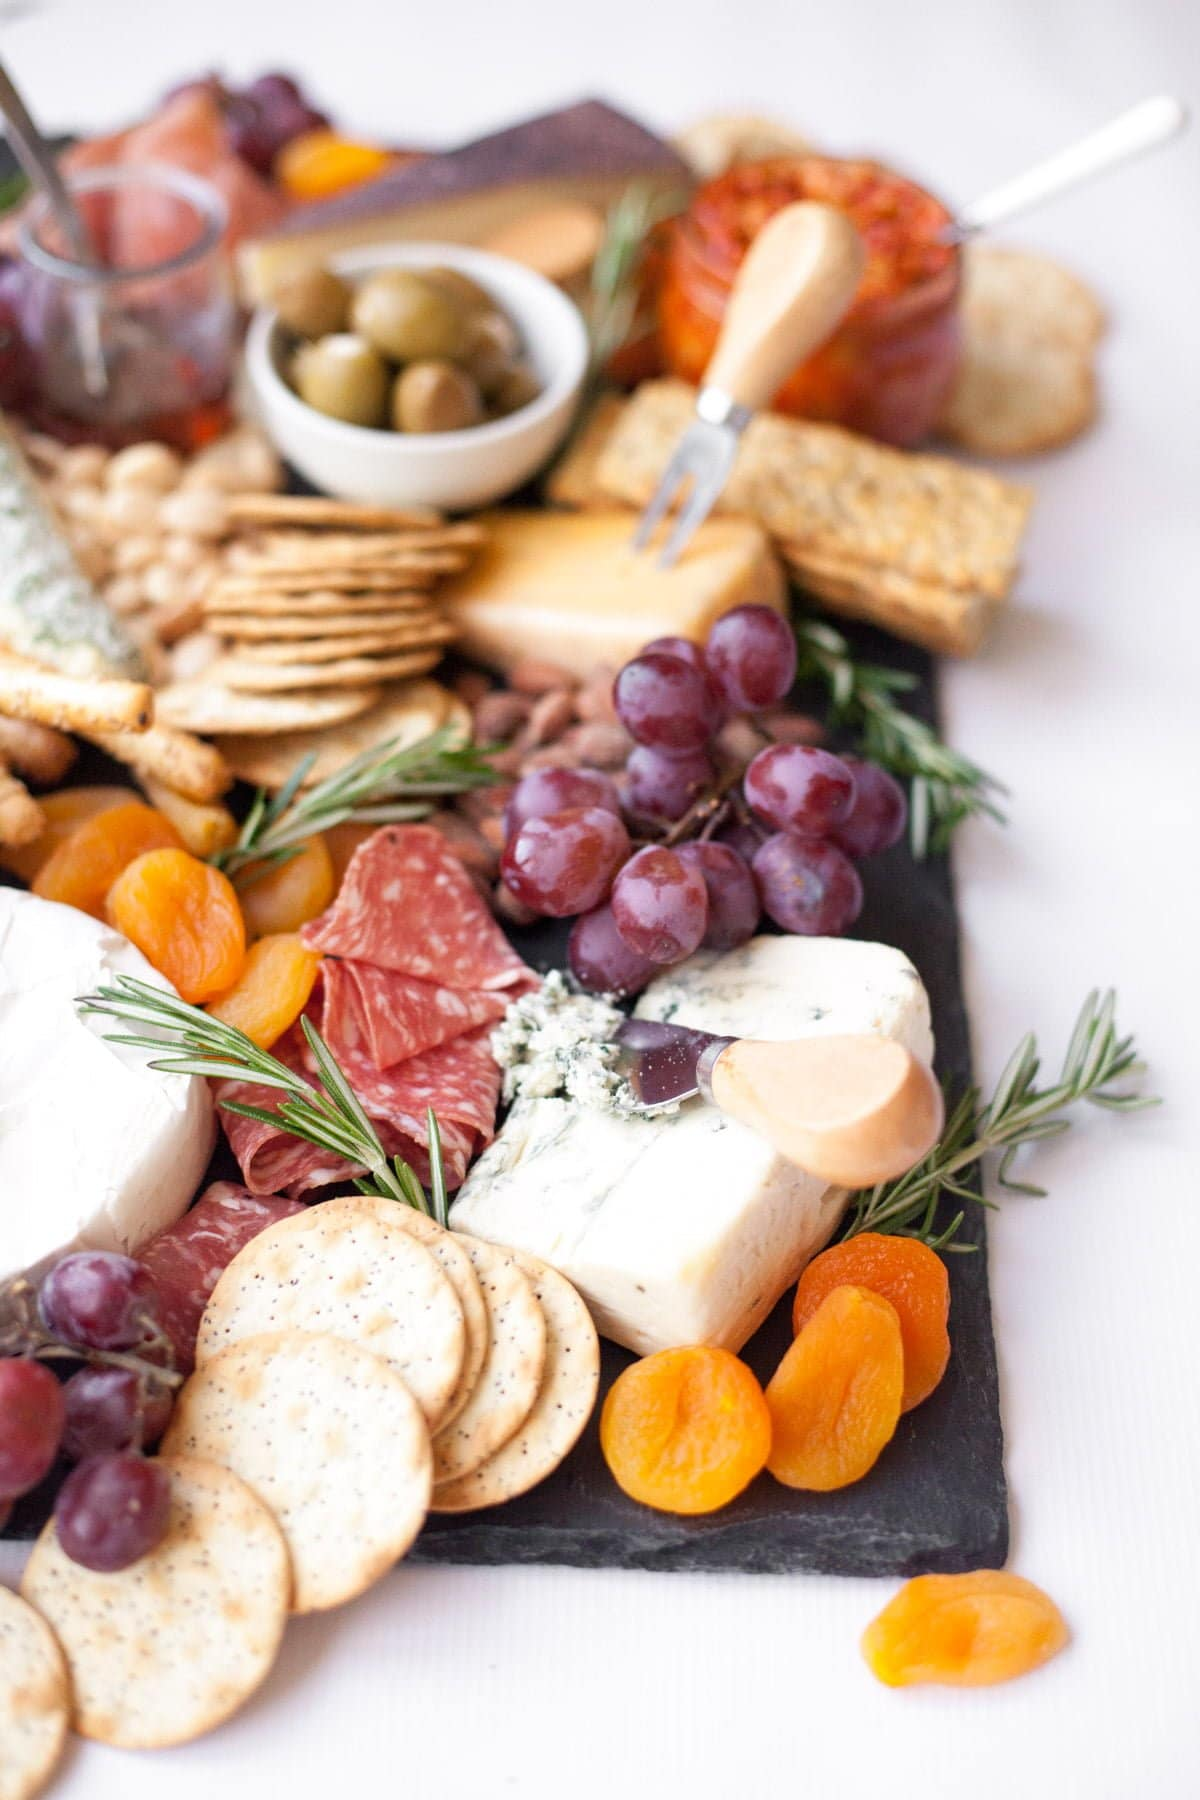 Close up of a cheese board arranged on a slate platter, with various cheeses and crackers, grapes, dried apricots, fresh rosemary, and charcuterie.